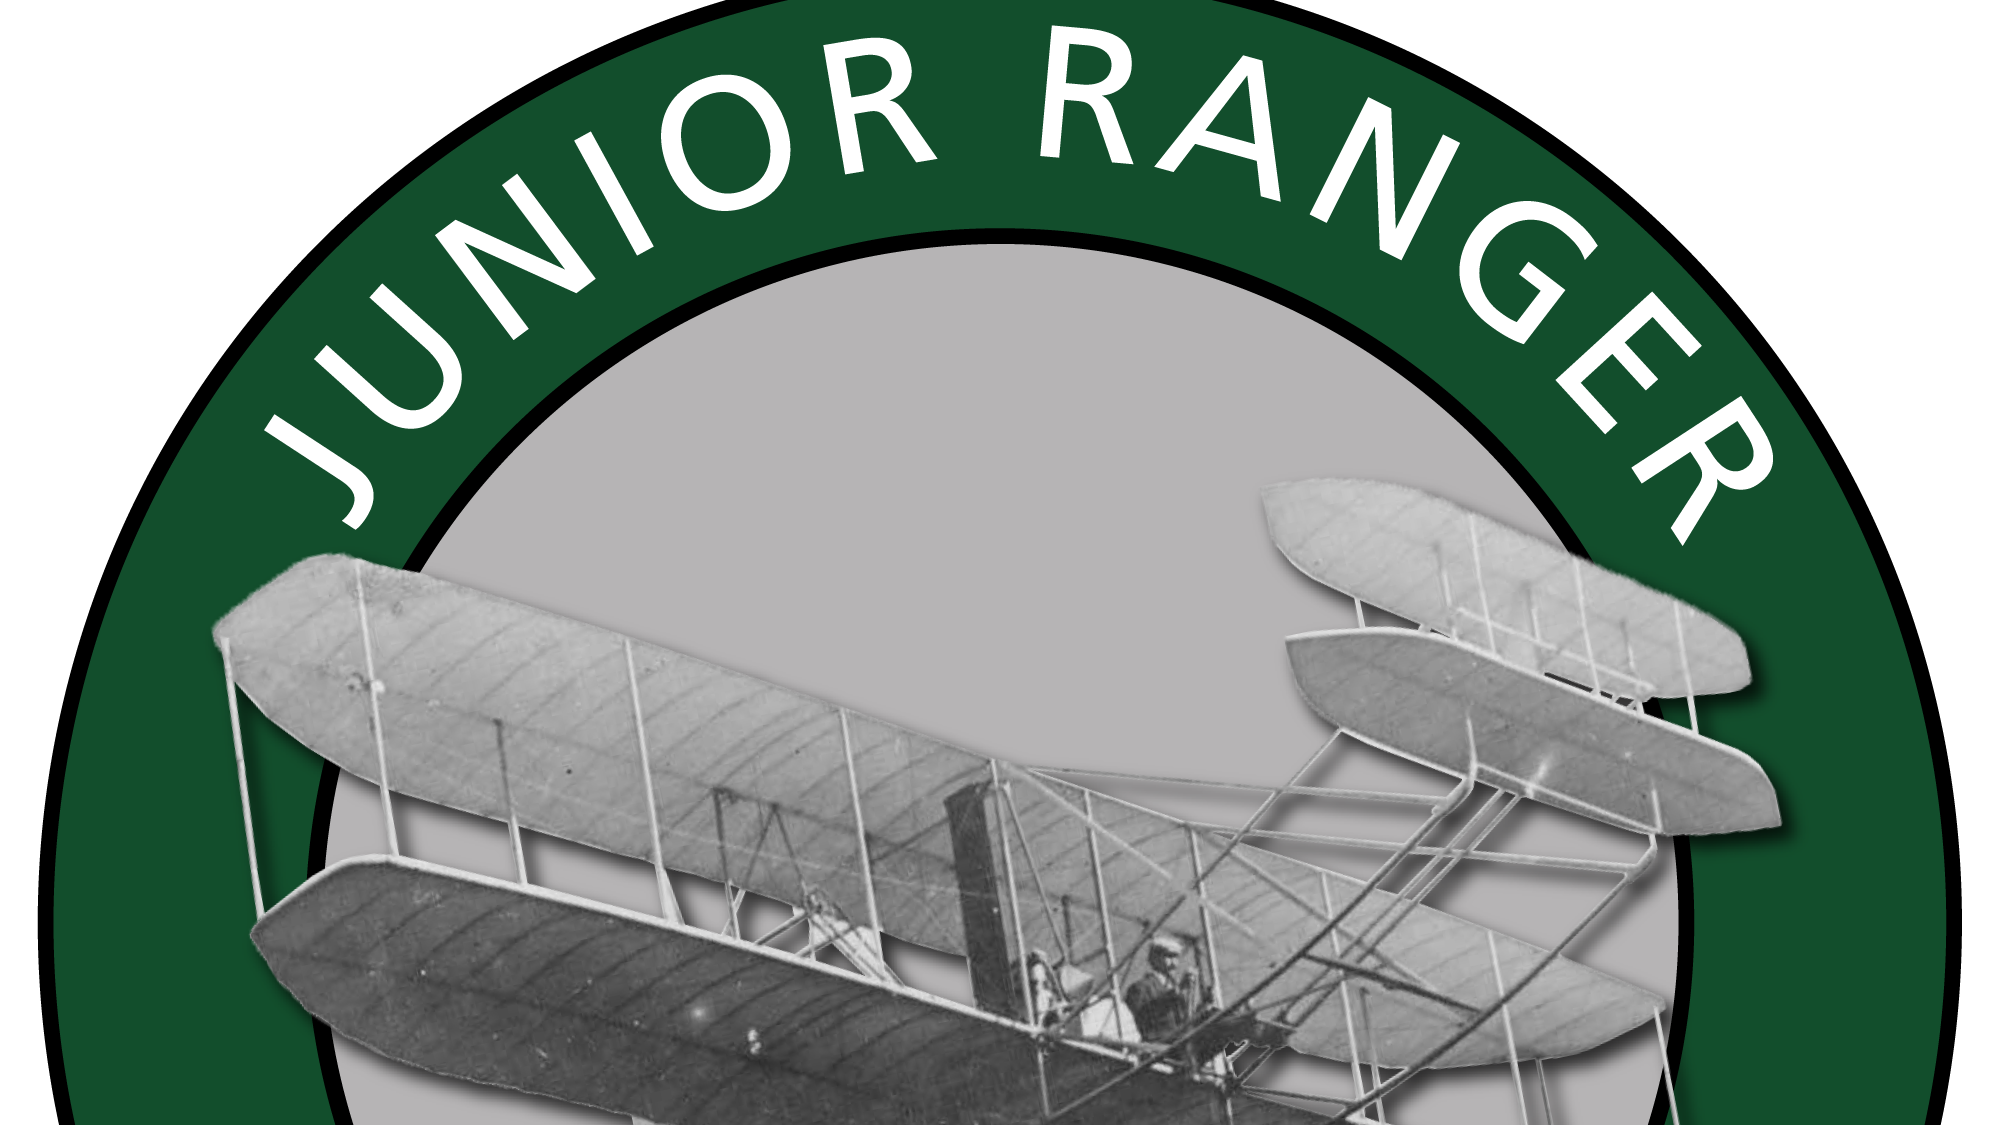 A picture of a Wright brothers plane on the Jr. Ranger logo background